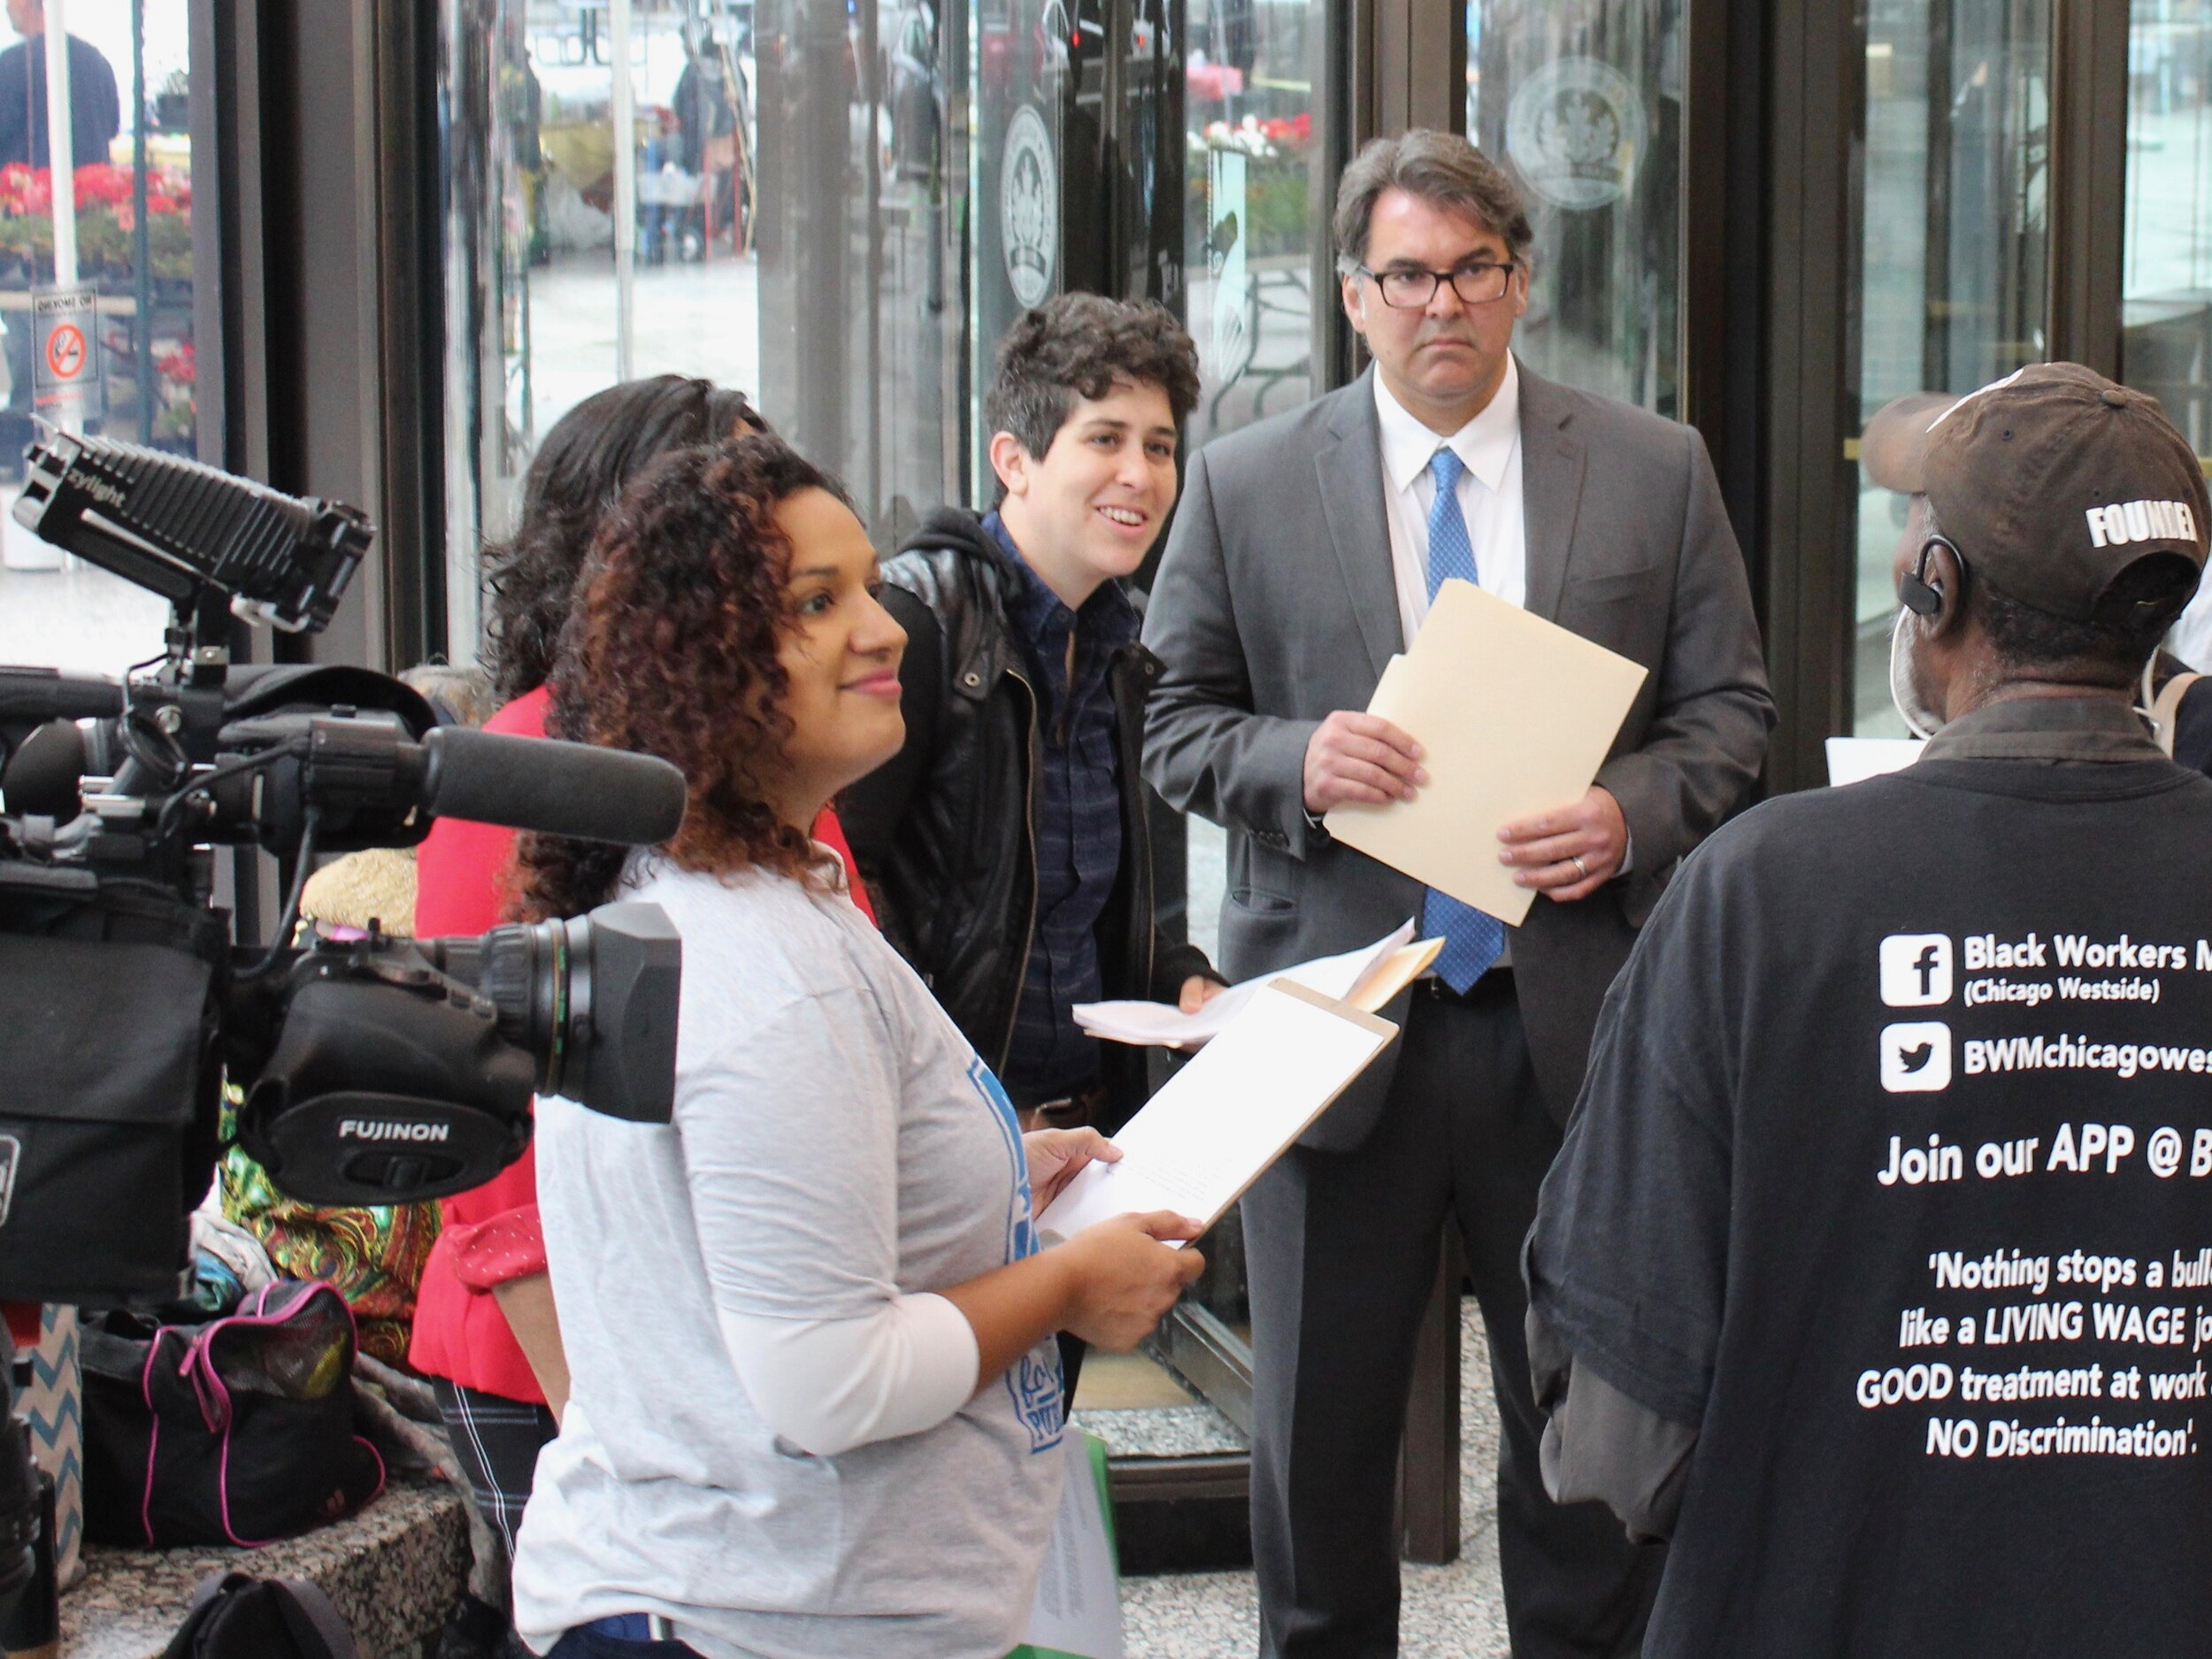 Timna Axel and Aneel Chablani (center), of the Chicago Lawyers' Committee for Civil Rights, discuss the suit before a news conference in Chicago in June. (One Illinois/Ted Cox)